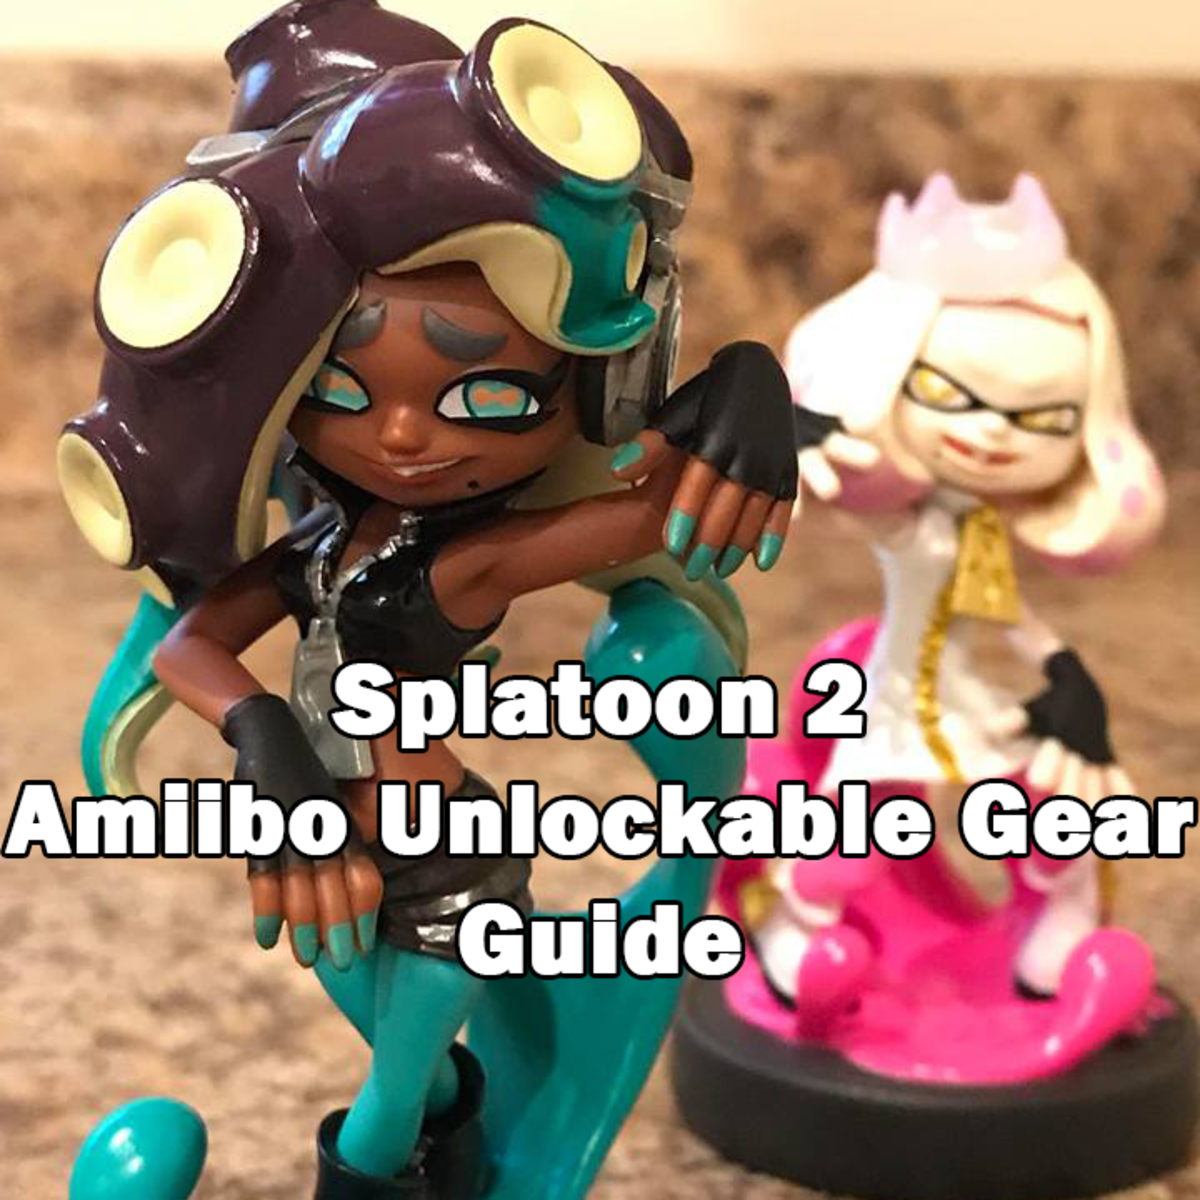 Marina and Pearl Amiibo